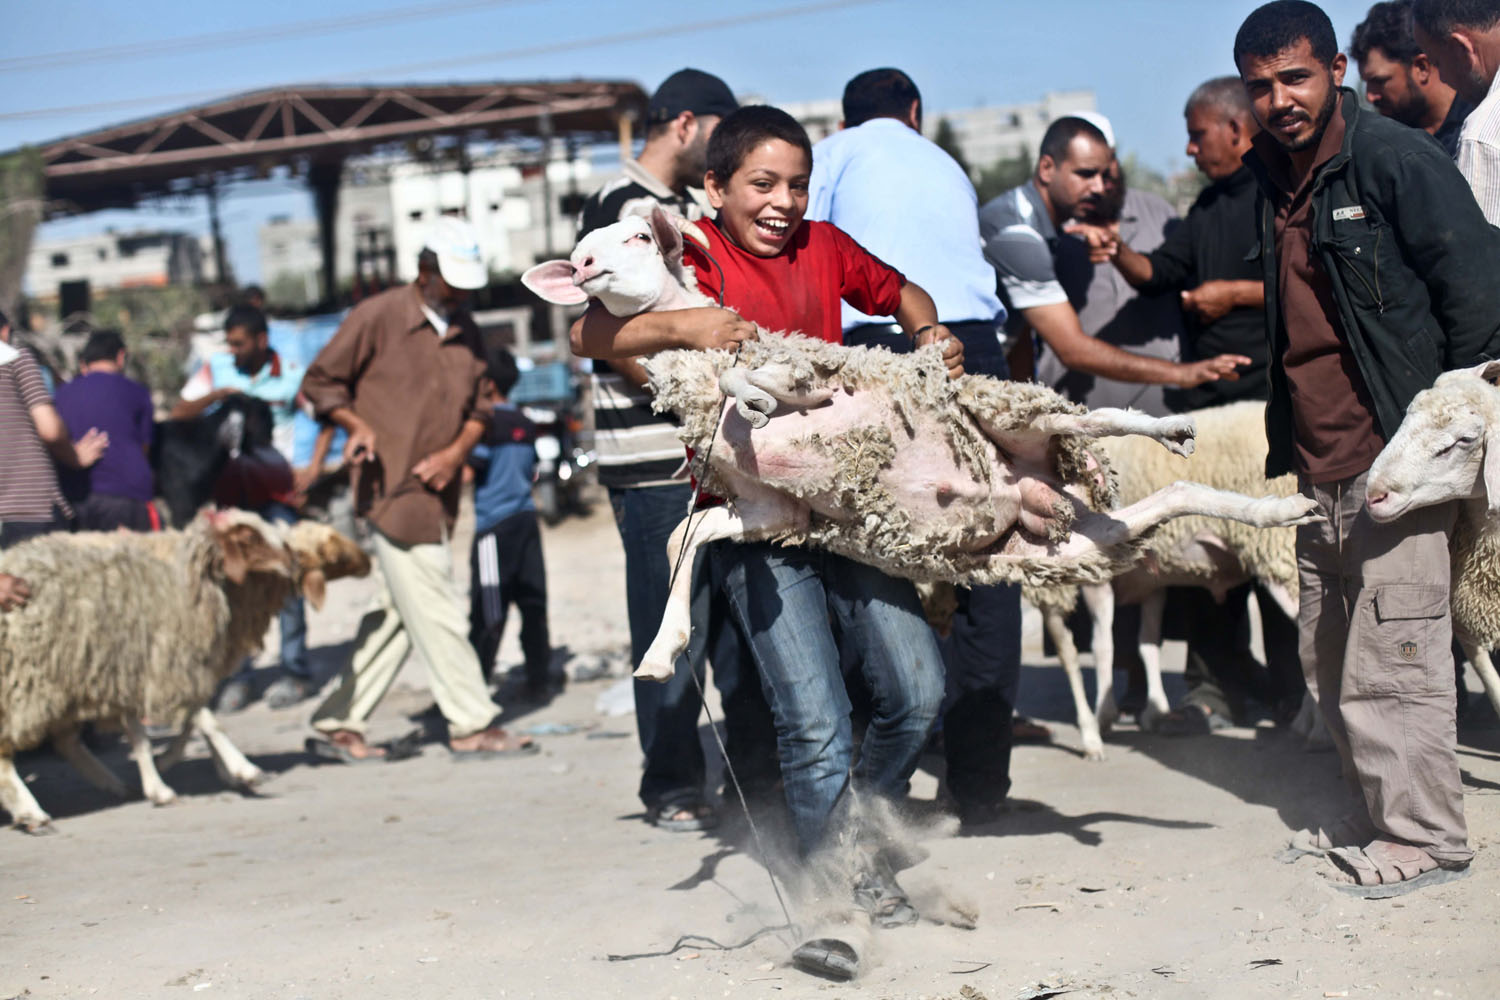 Oct. 11, 2013. Palestinians trade goats at a local cattle market ahead of Muslim festival of Eid al-Adha, in Gaza city.